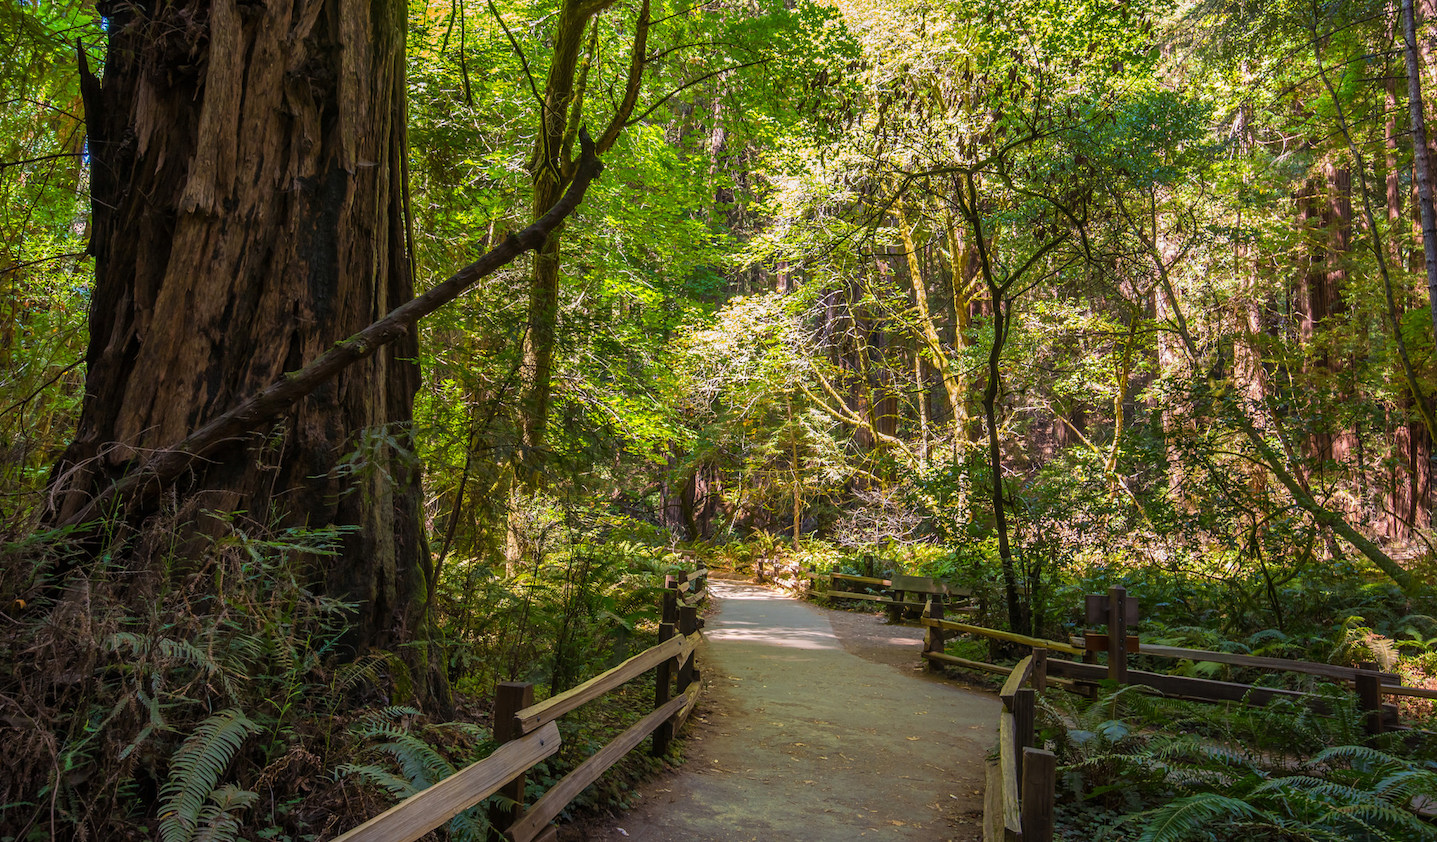 How far is muir woods from san francisco